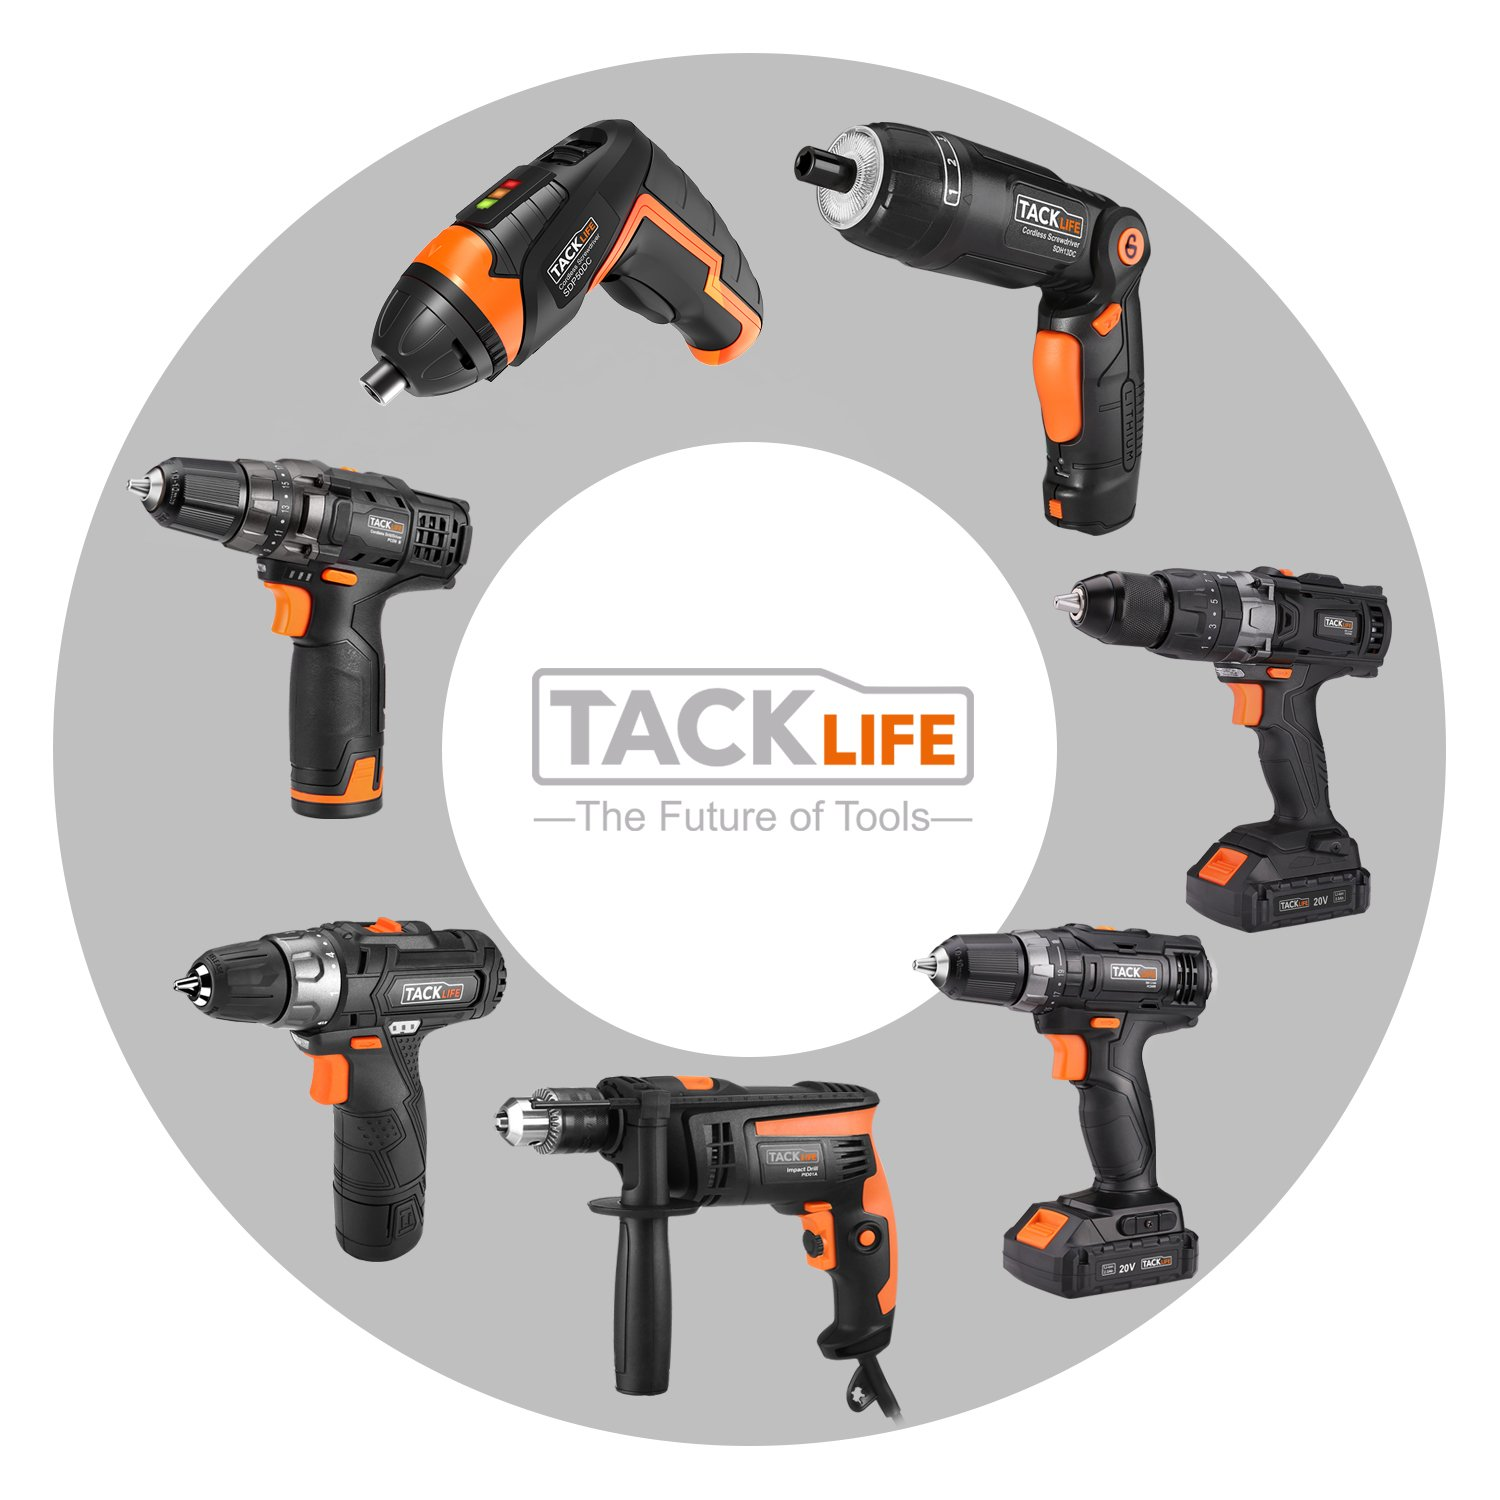 TACKLIFE Cordless Screwdriver, 3.6V Electric Rechargeable Screwdriver 2000Ahm Lithium Ion Battery MAX Torque 4N.m, 3 Flexible Position and 6 Torque Setting, Front LED and Rear Flashlight,SDH13DC by TACKLIFE